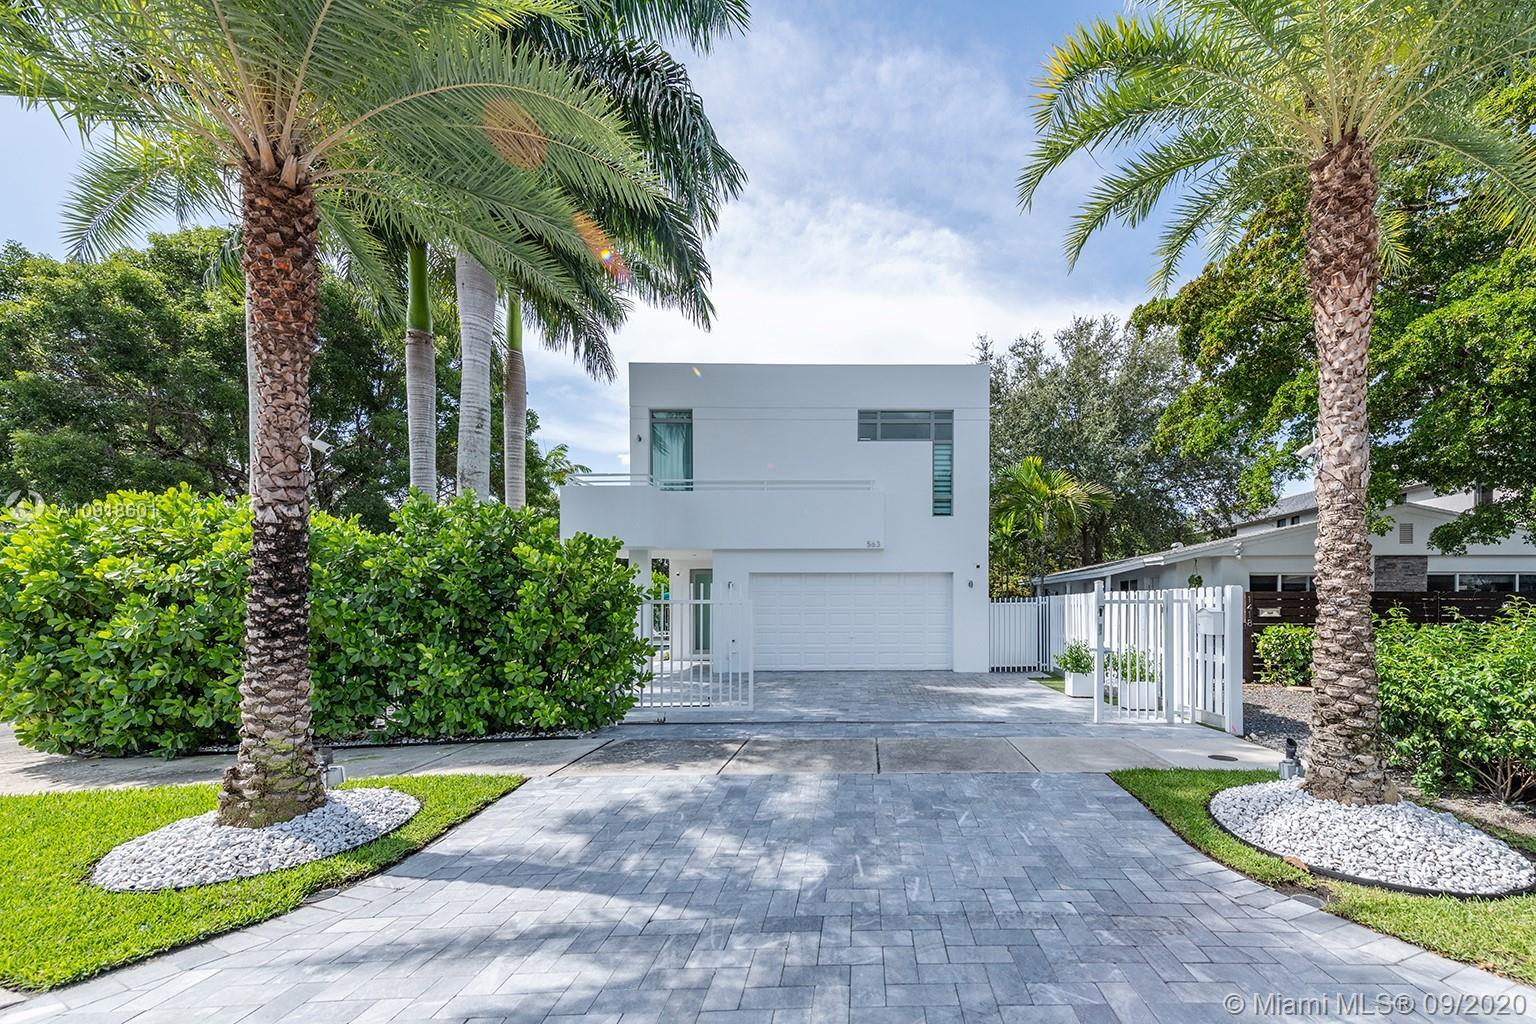 Impeccable, elegant, private, modern oasis in the heart of hot Victoria Park. Soaring 20' ceilings,